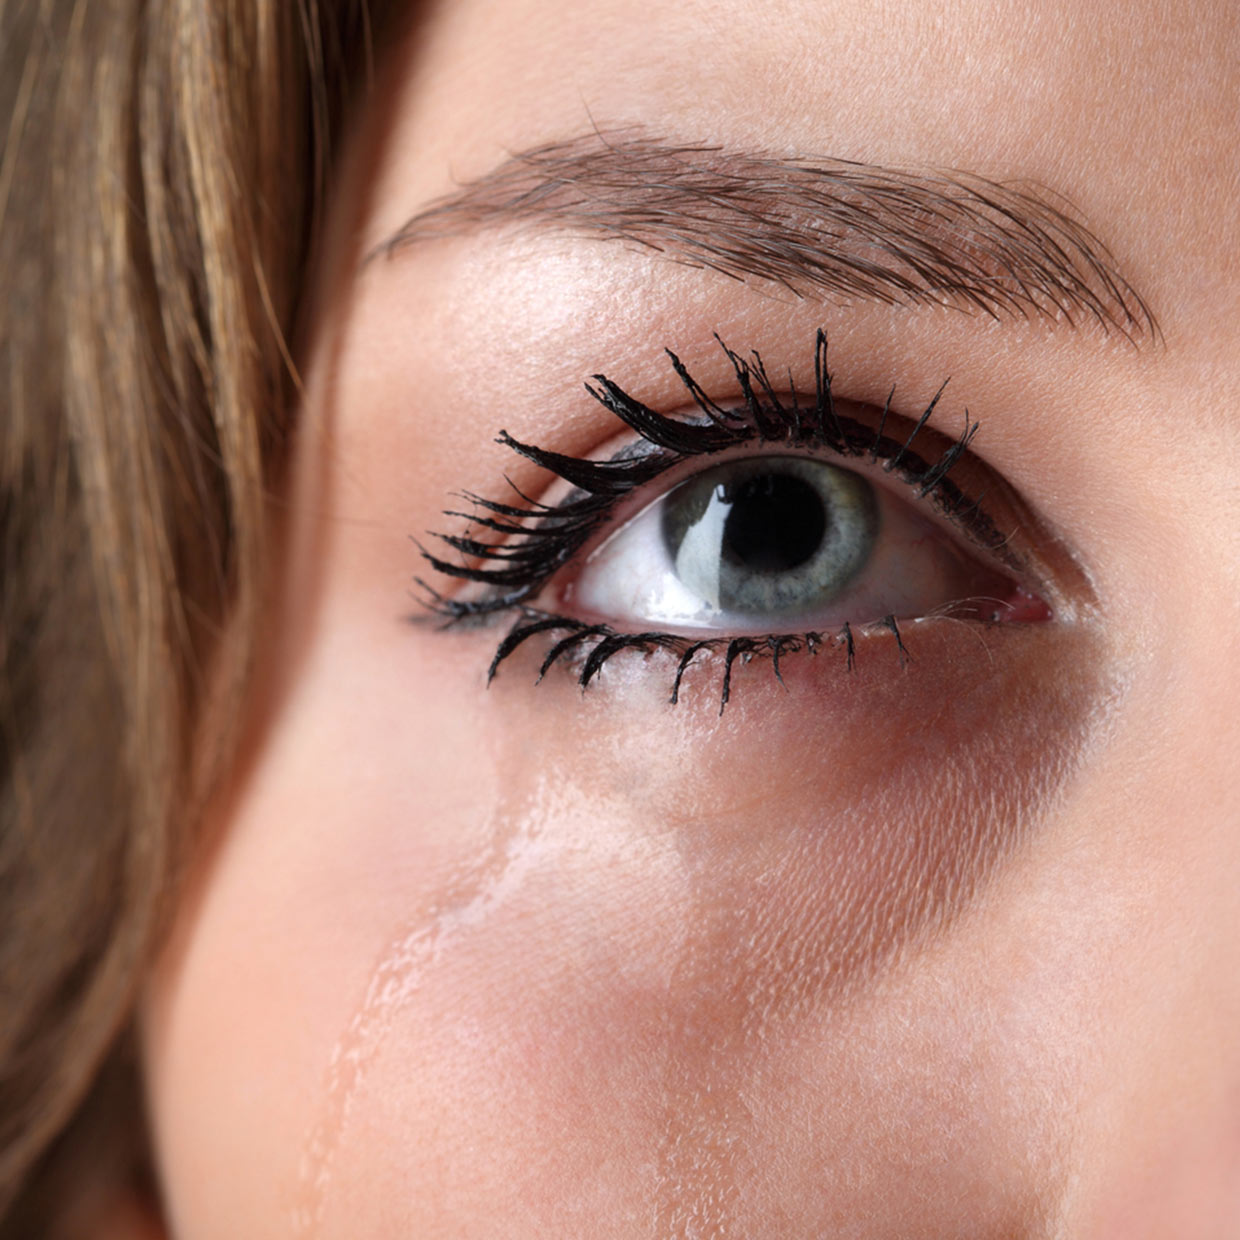 Do you suffer from watery eyes? Lacrimal syringing could be the answer